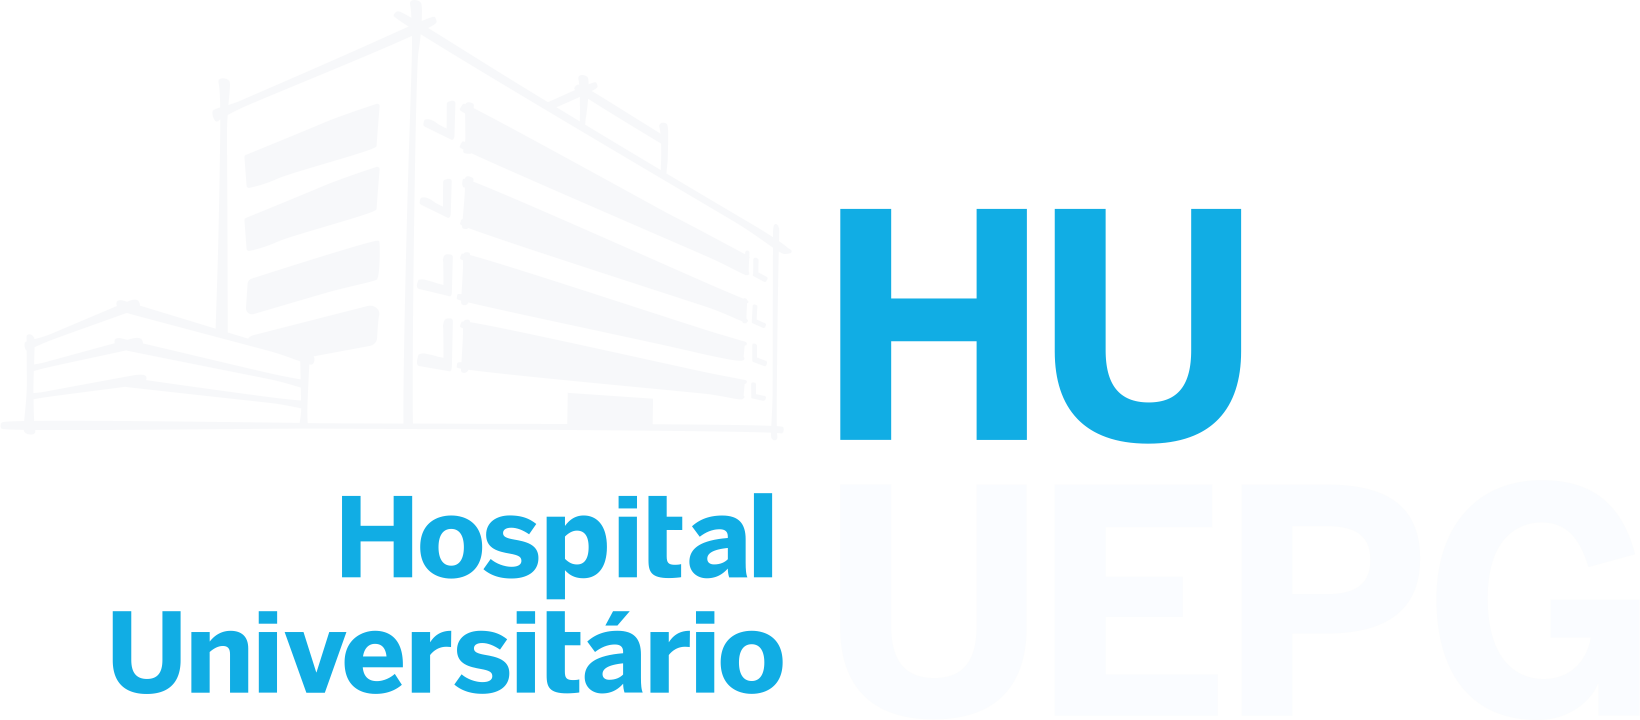 Logo do Hospital Universitário Regional dos Campos Gerais